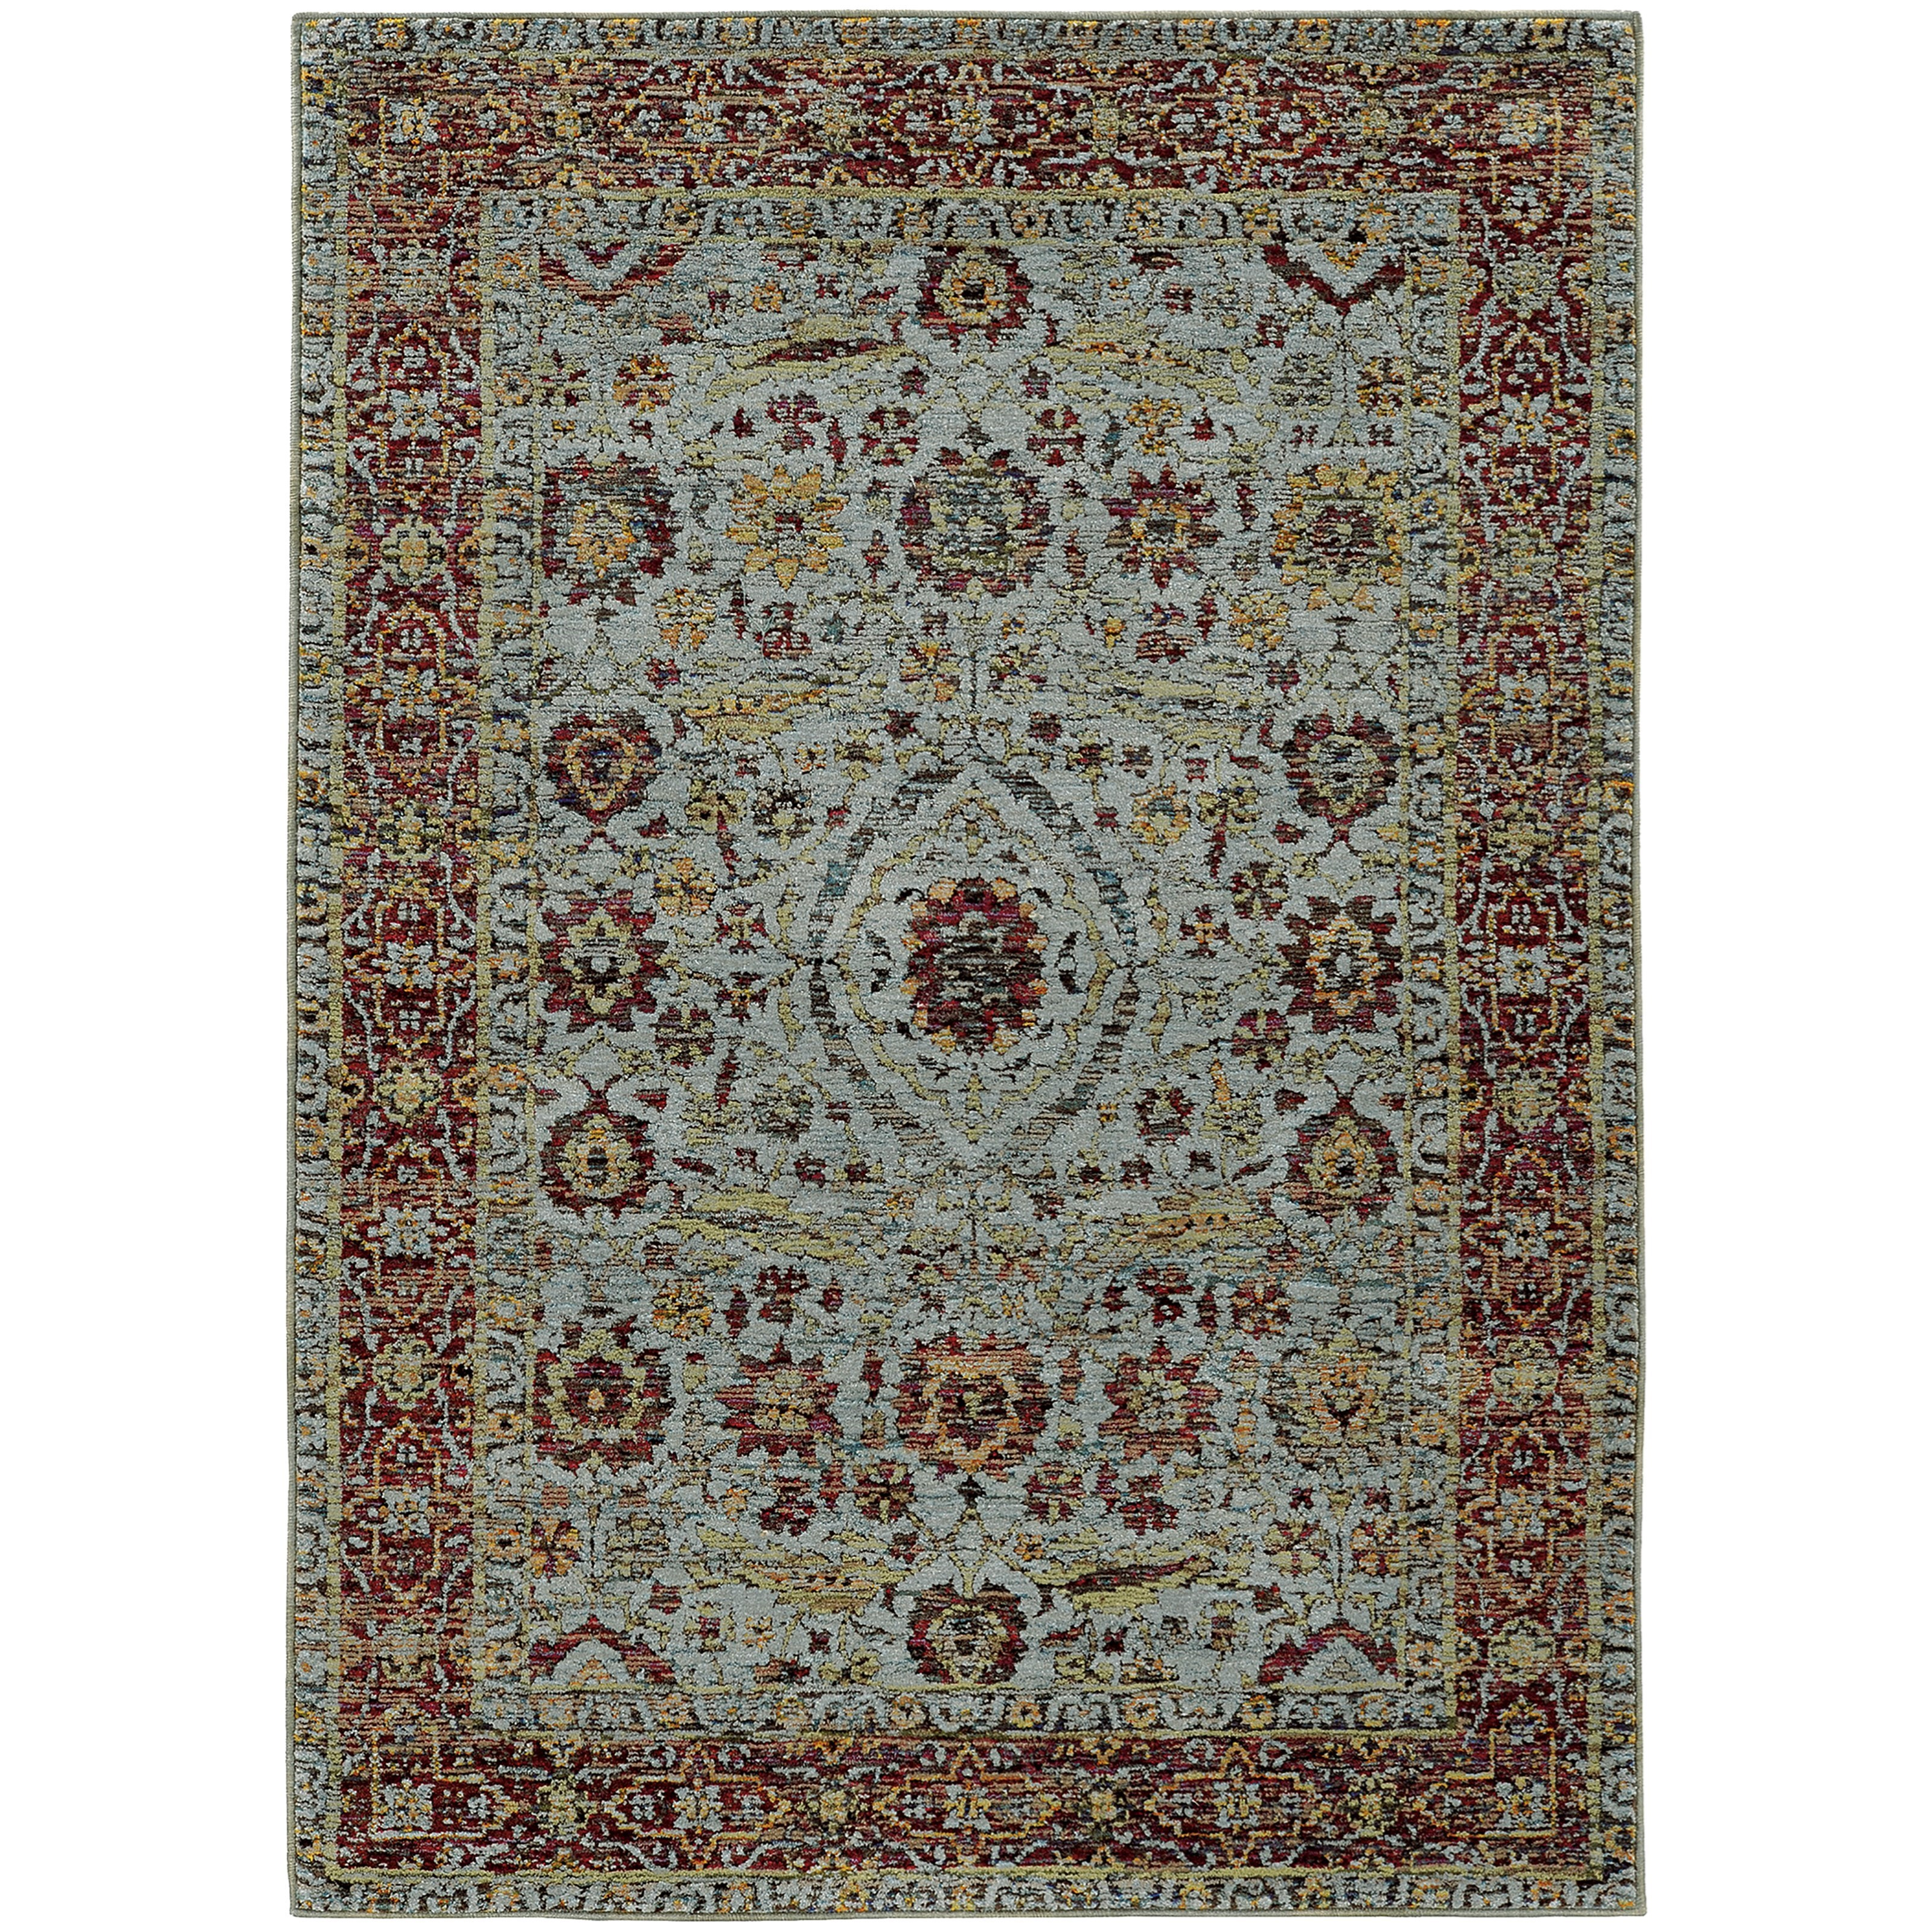 """Andorra 5' 3"""" X  7' 3"""" Casual Blue/ Red Rectangle Ru by Oriental Weavers at Steger's Furniture"""